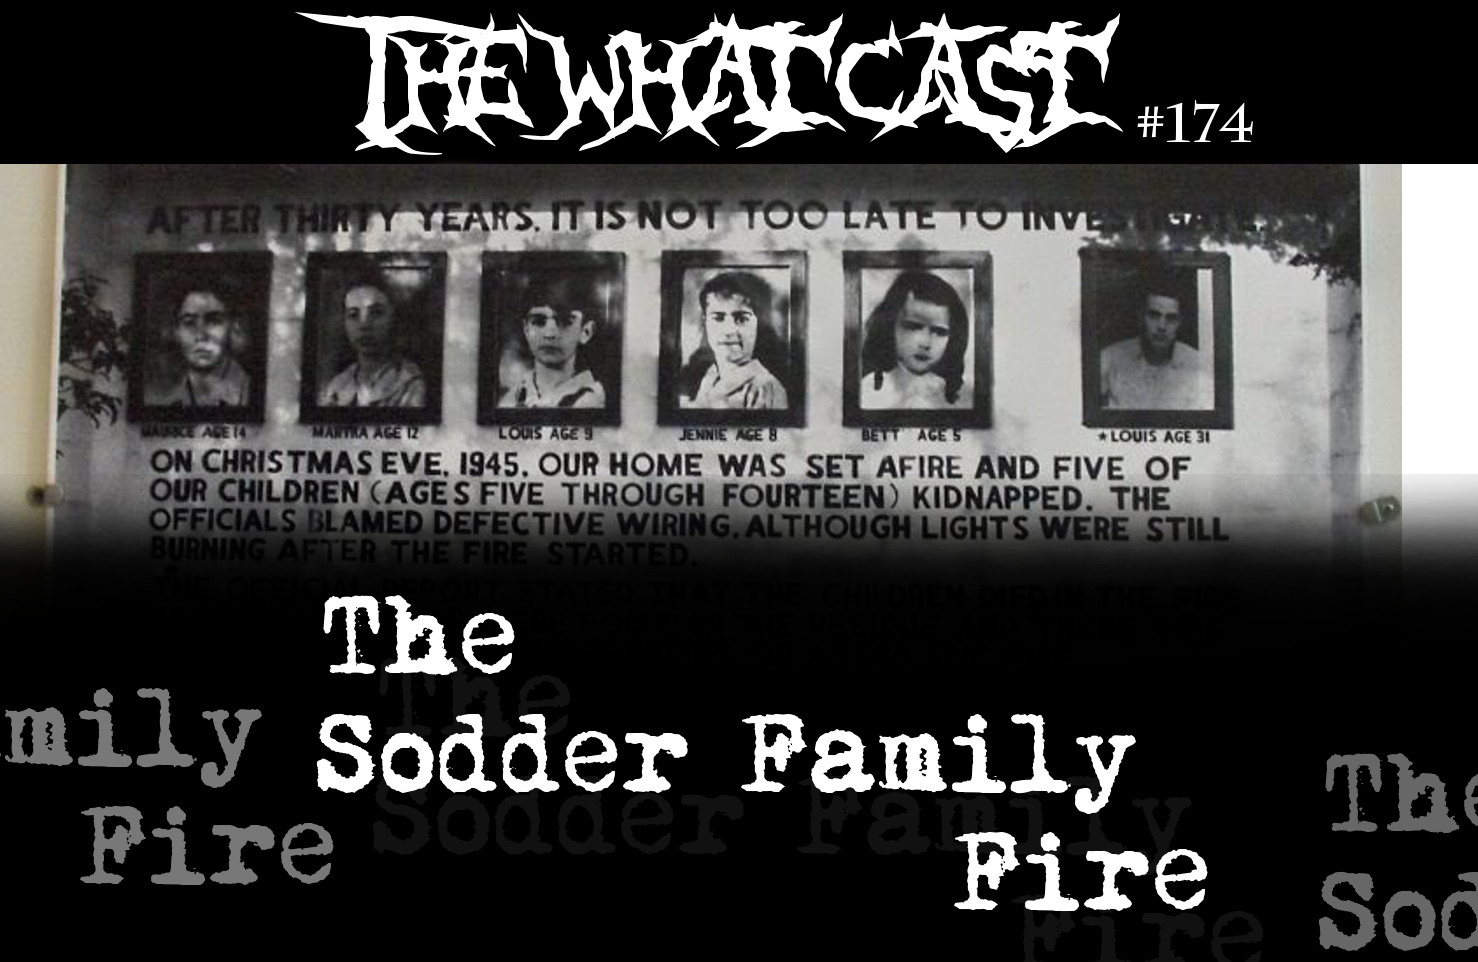 The What Cast #174 - The Sodder Family Fire